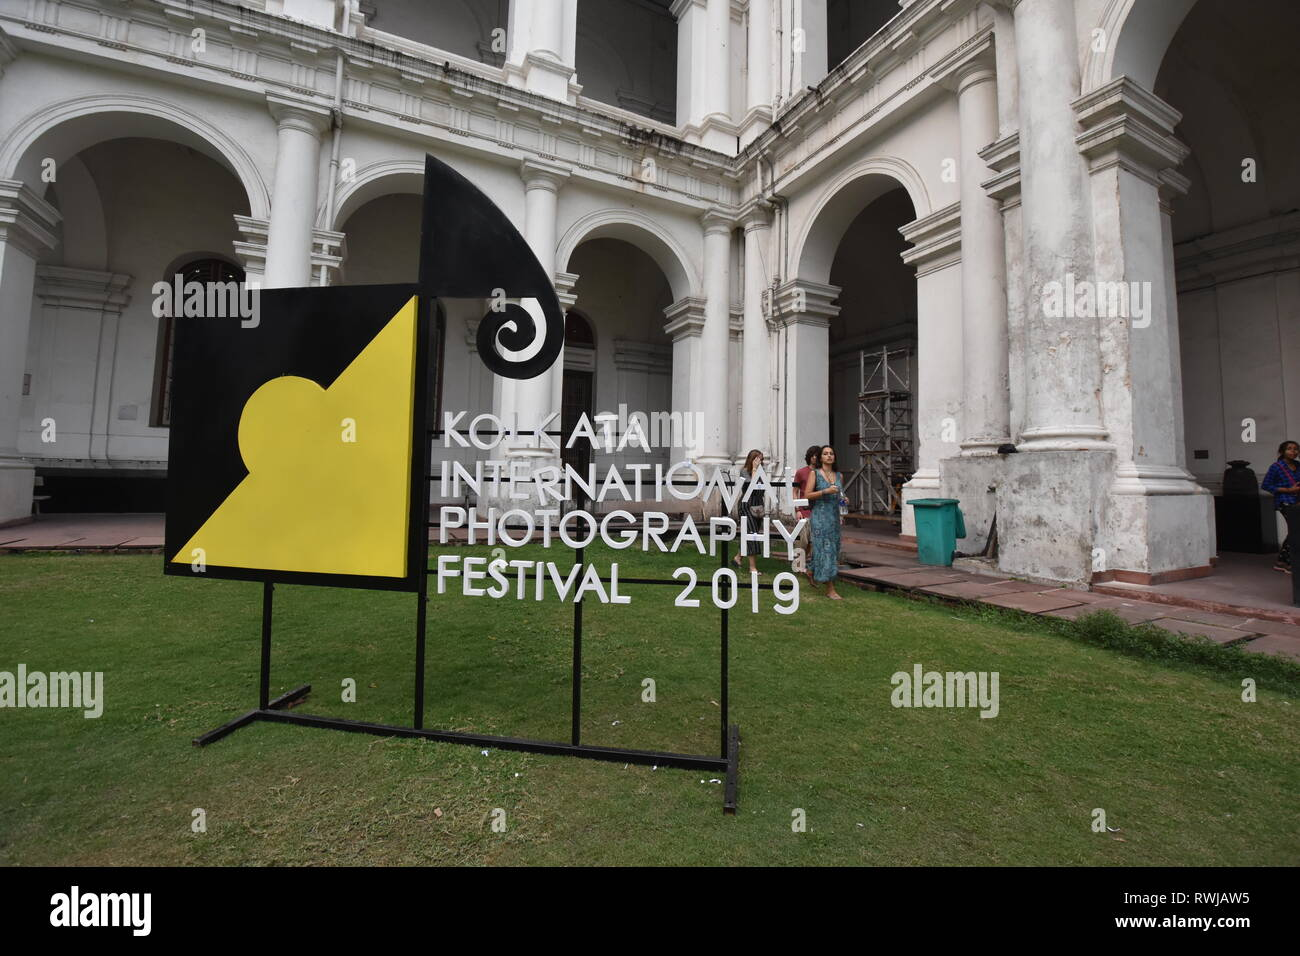 Kolkata, India. 6th Mar, 2019. A photographic exhibition was held at the Indian Museum as a part of the seven day long 'Kolkata International Photography Festival (KIPF) 2019' of over 250 photographers' works from over 40 countries that was started from 28th February to 6th March, 2019 at the ten iconic venues in Kolkata, it was organised by a Kolkata based private gallery. Credit: Biswarup Ganguly/Alamy Live News - Stock Image